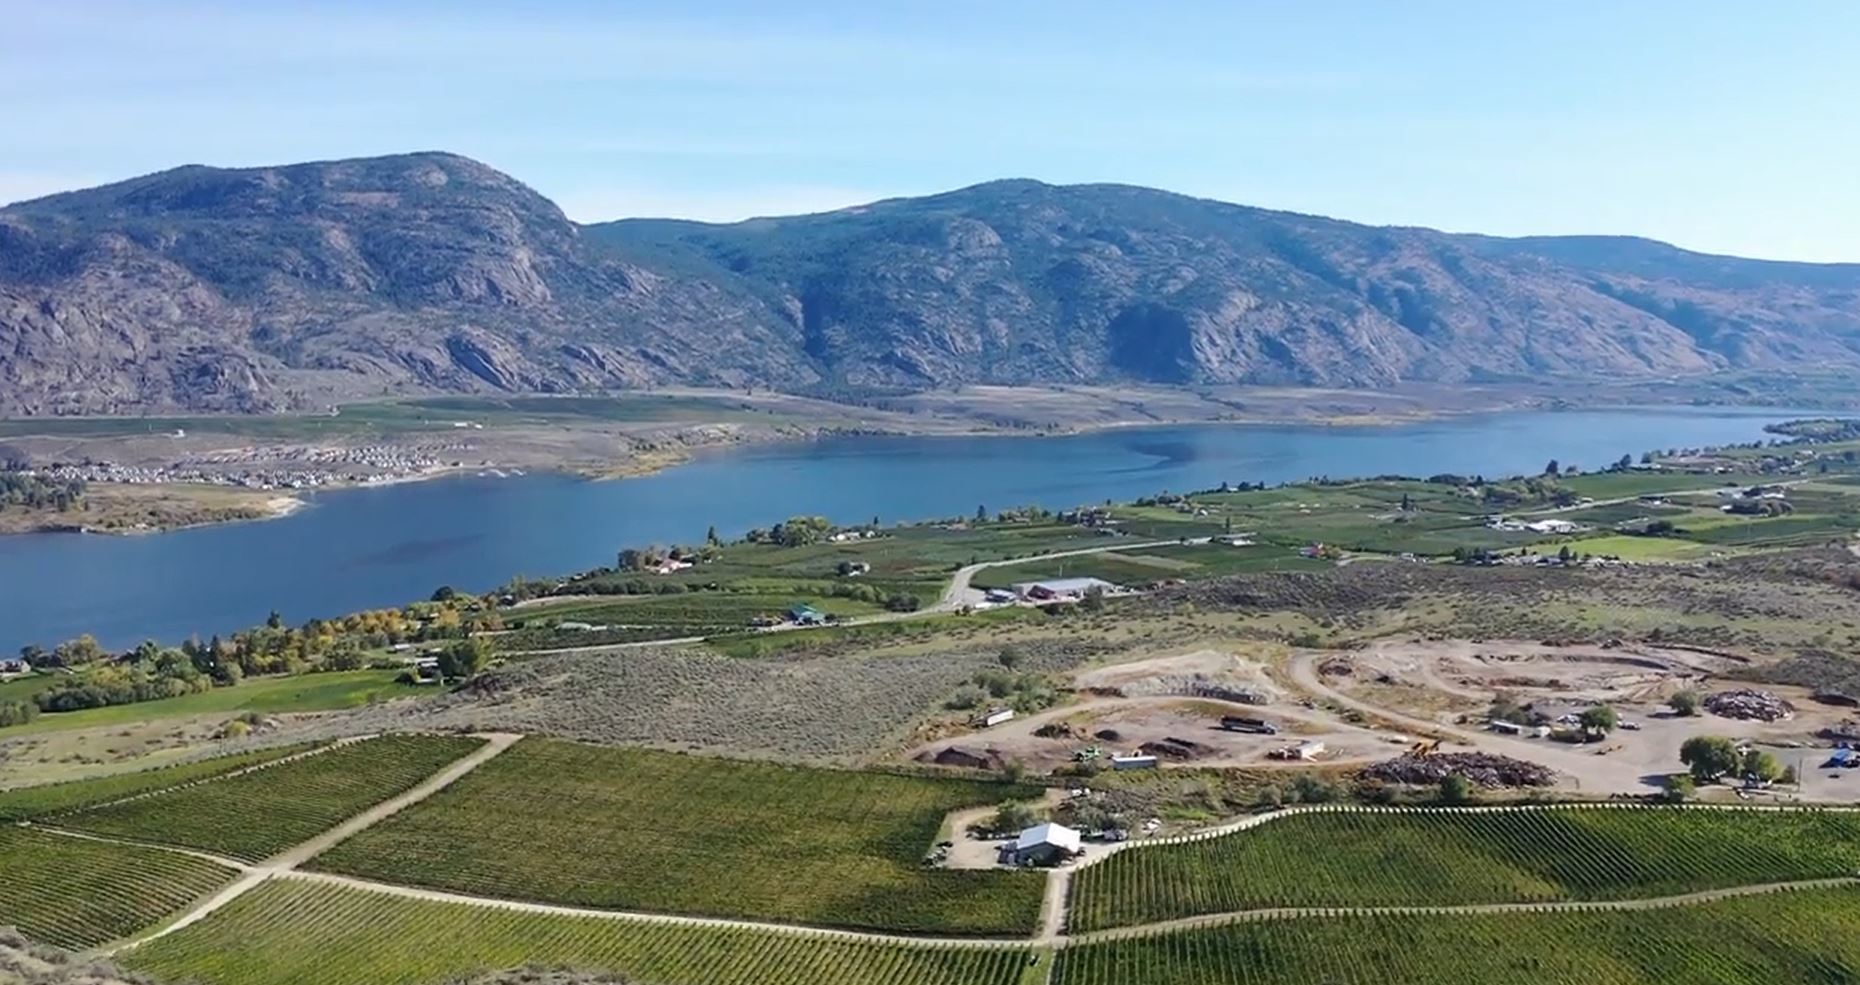 48 Acres Overlooking Osoyoos Lake